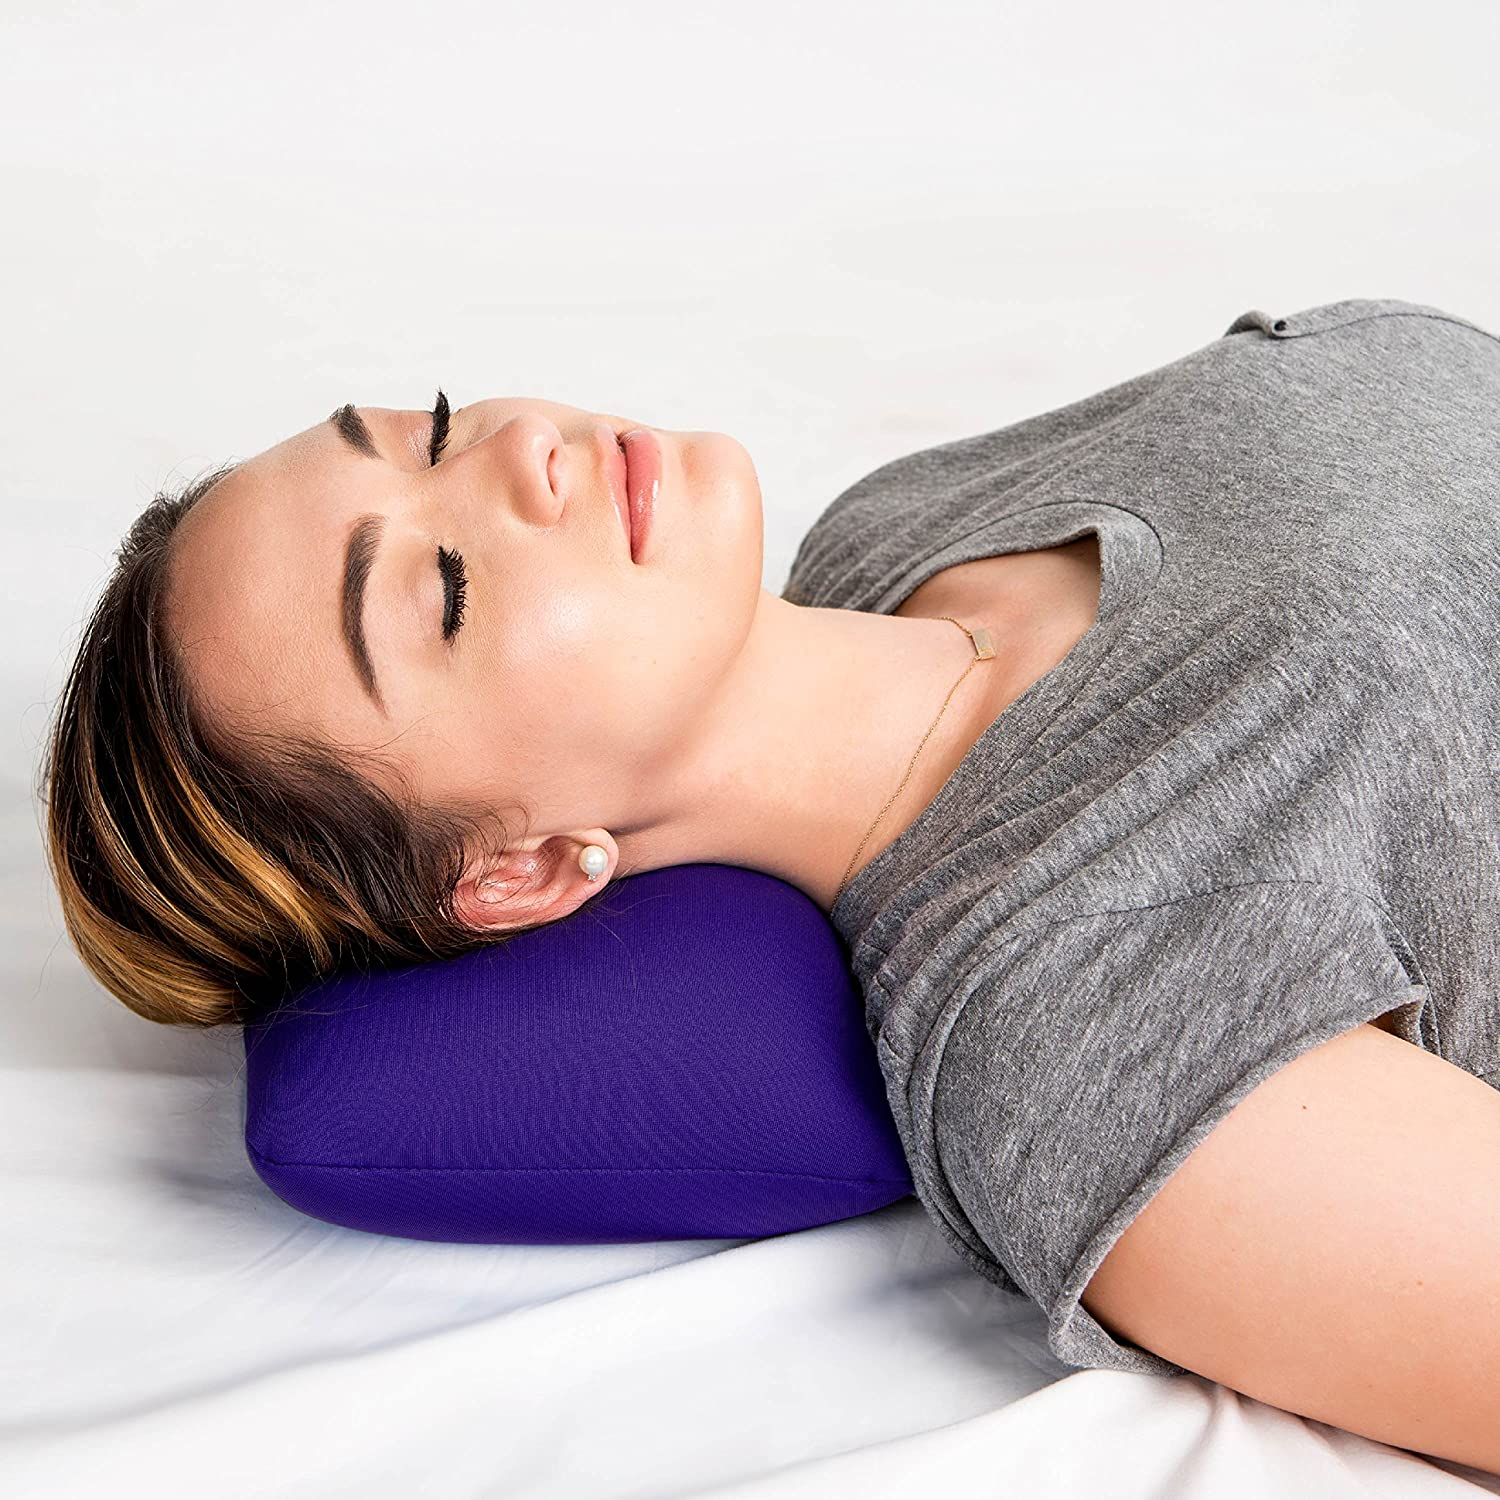 Purple Cushie Pillows 11 inches x 8 inches x 6 inches Microbead Bolster Squishy//Flexible//Extremely Comfortable Pillow